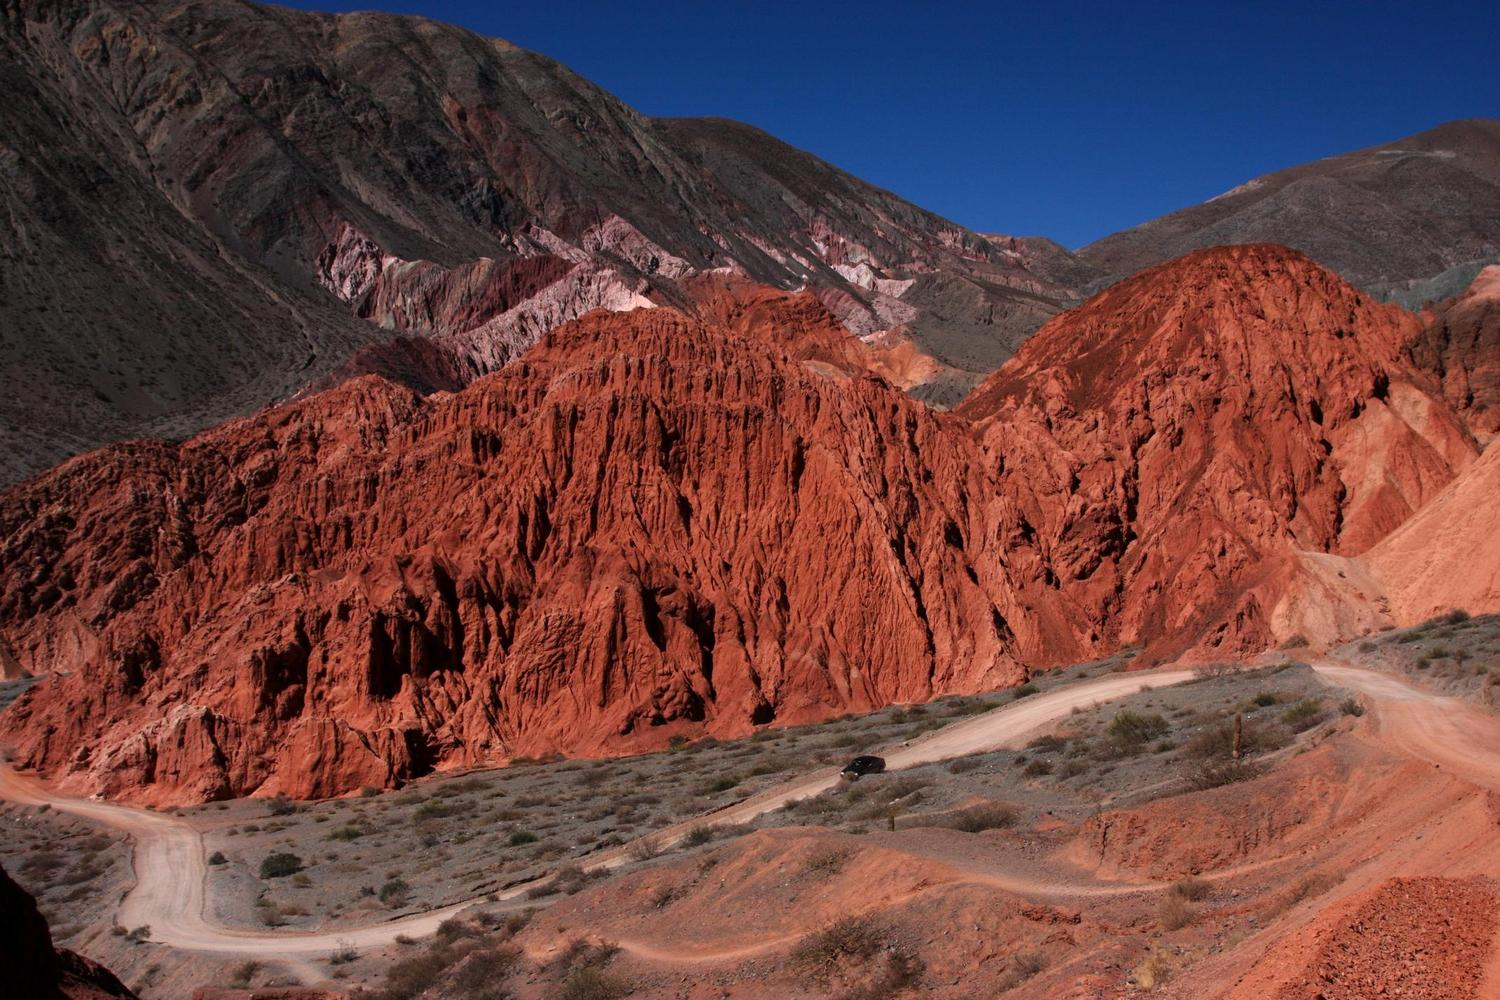 The road through the Quebrada de Humahuaca near Purmamarca